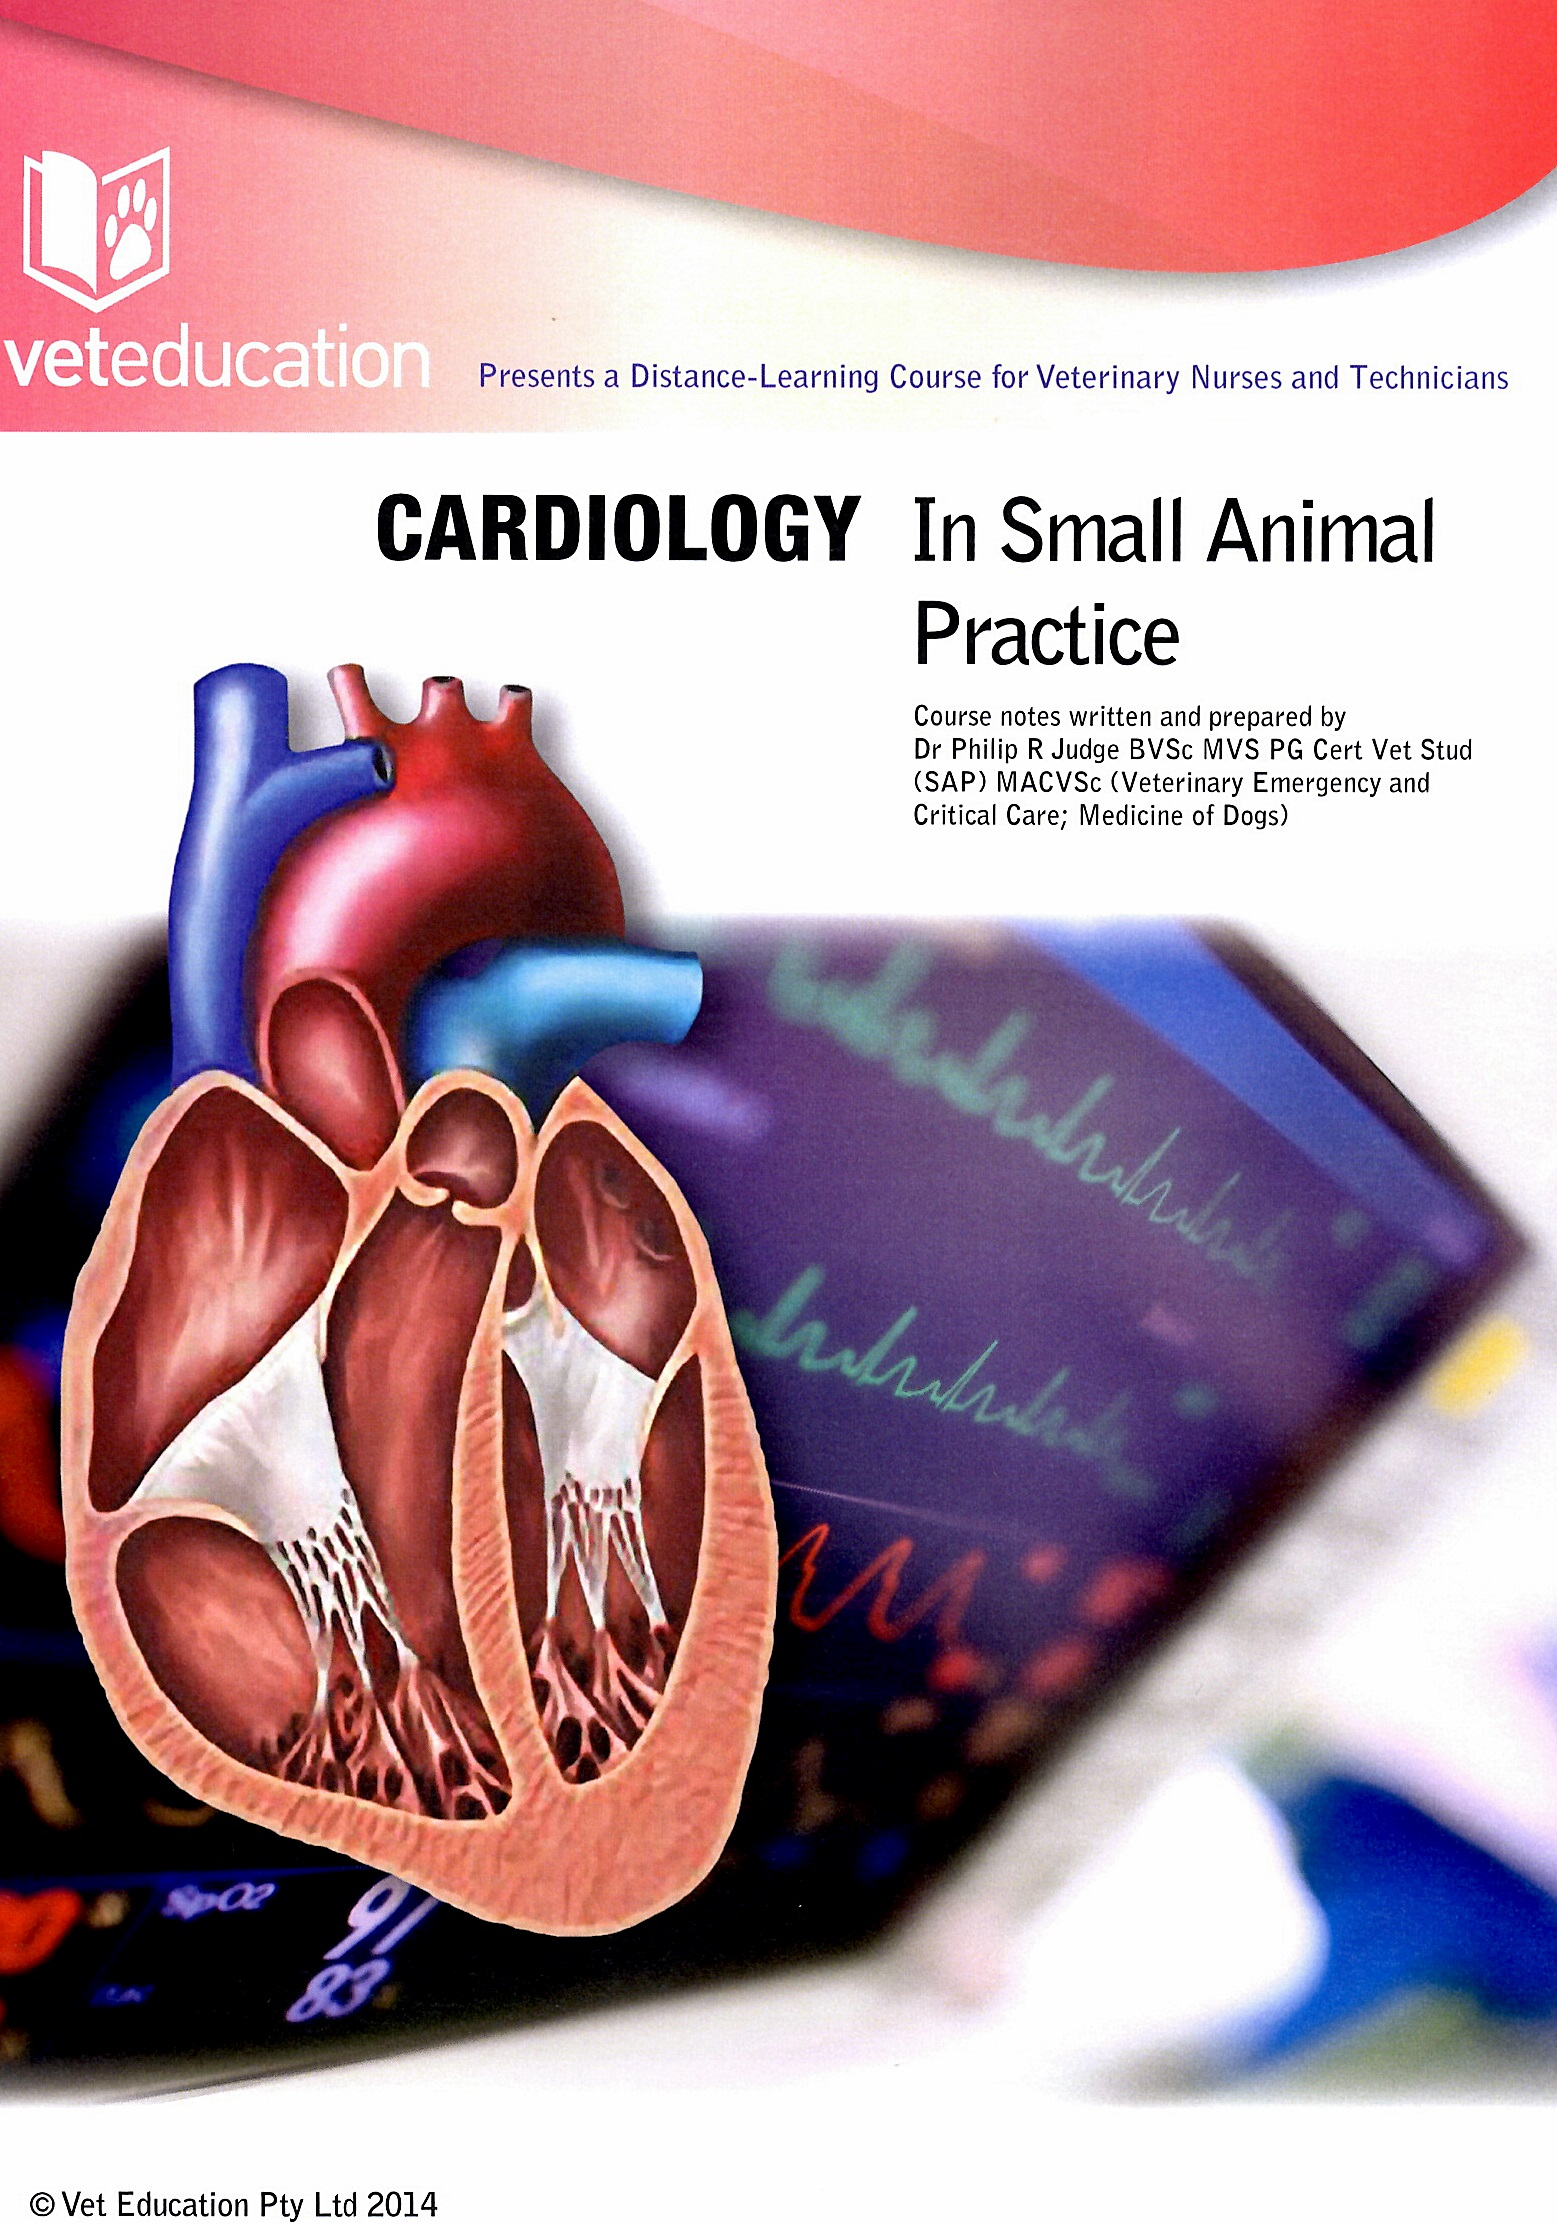 cardiology course cover